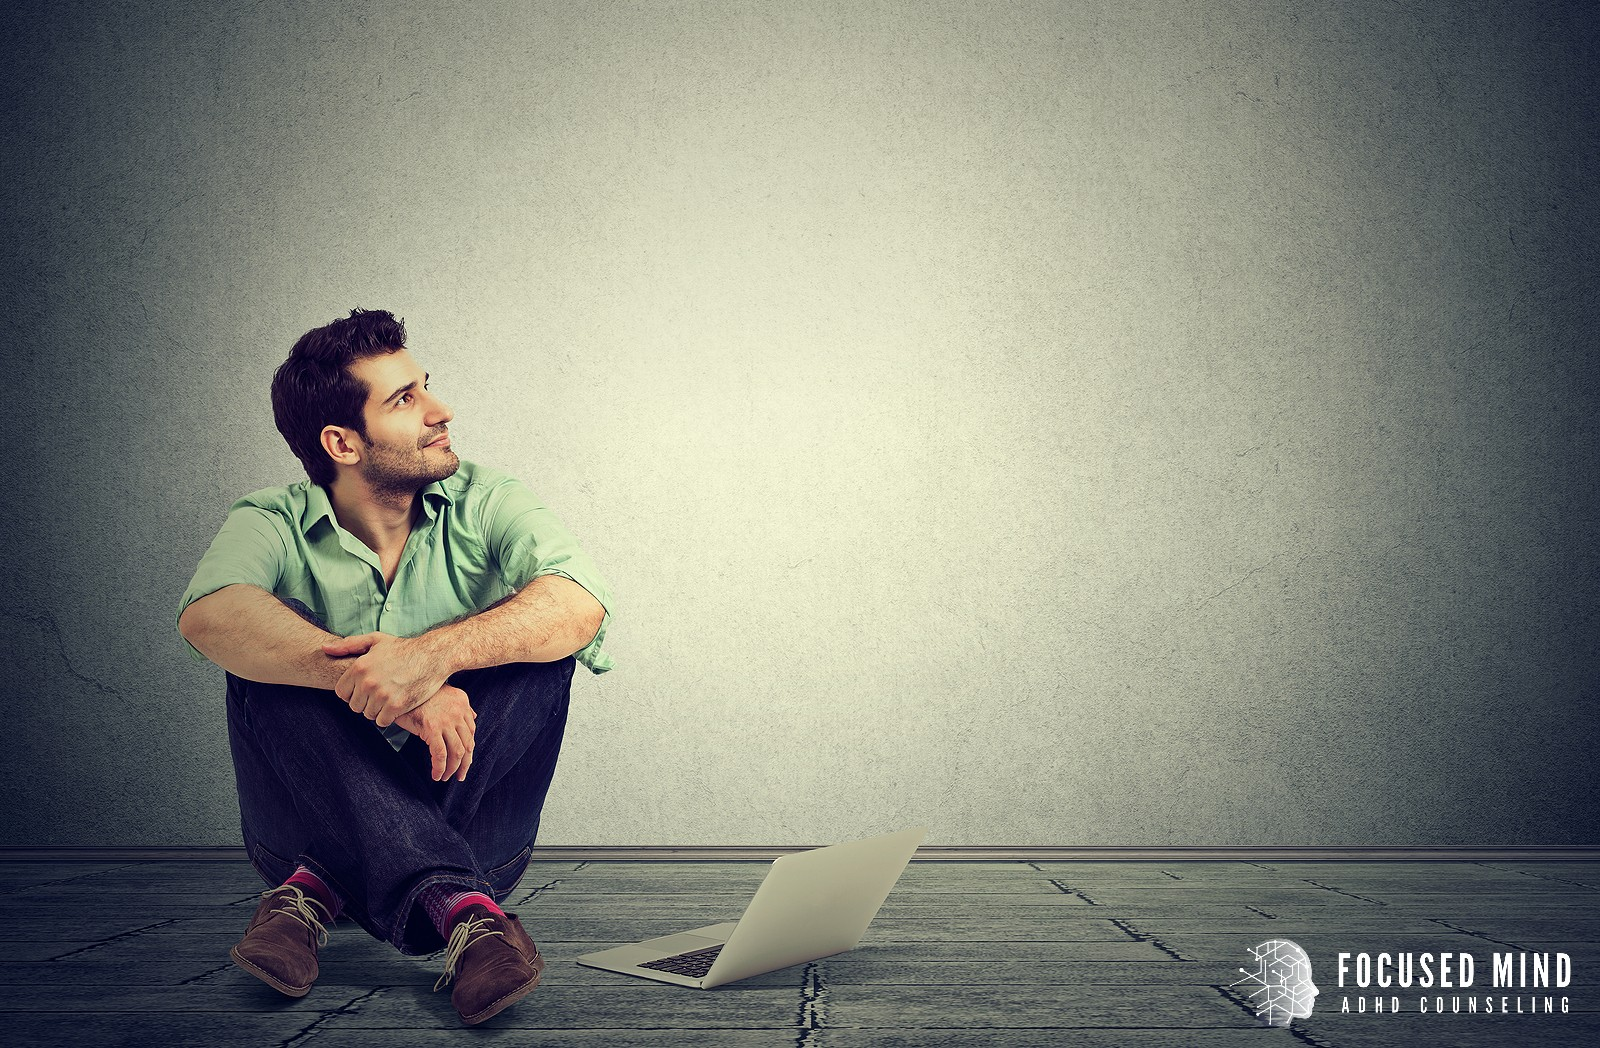 A man looks up to the side as he sits on the ground next to a laptop. This could represent the calmed mind of a client after treatment for adult ADHD in Columbus, OH. Contact an adult ADHD therapist in Ohio for an adult ADHD quiz, online therapy, and other services.